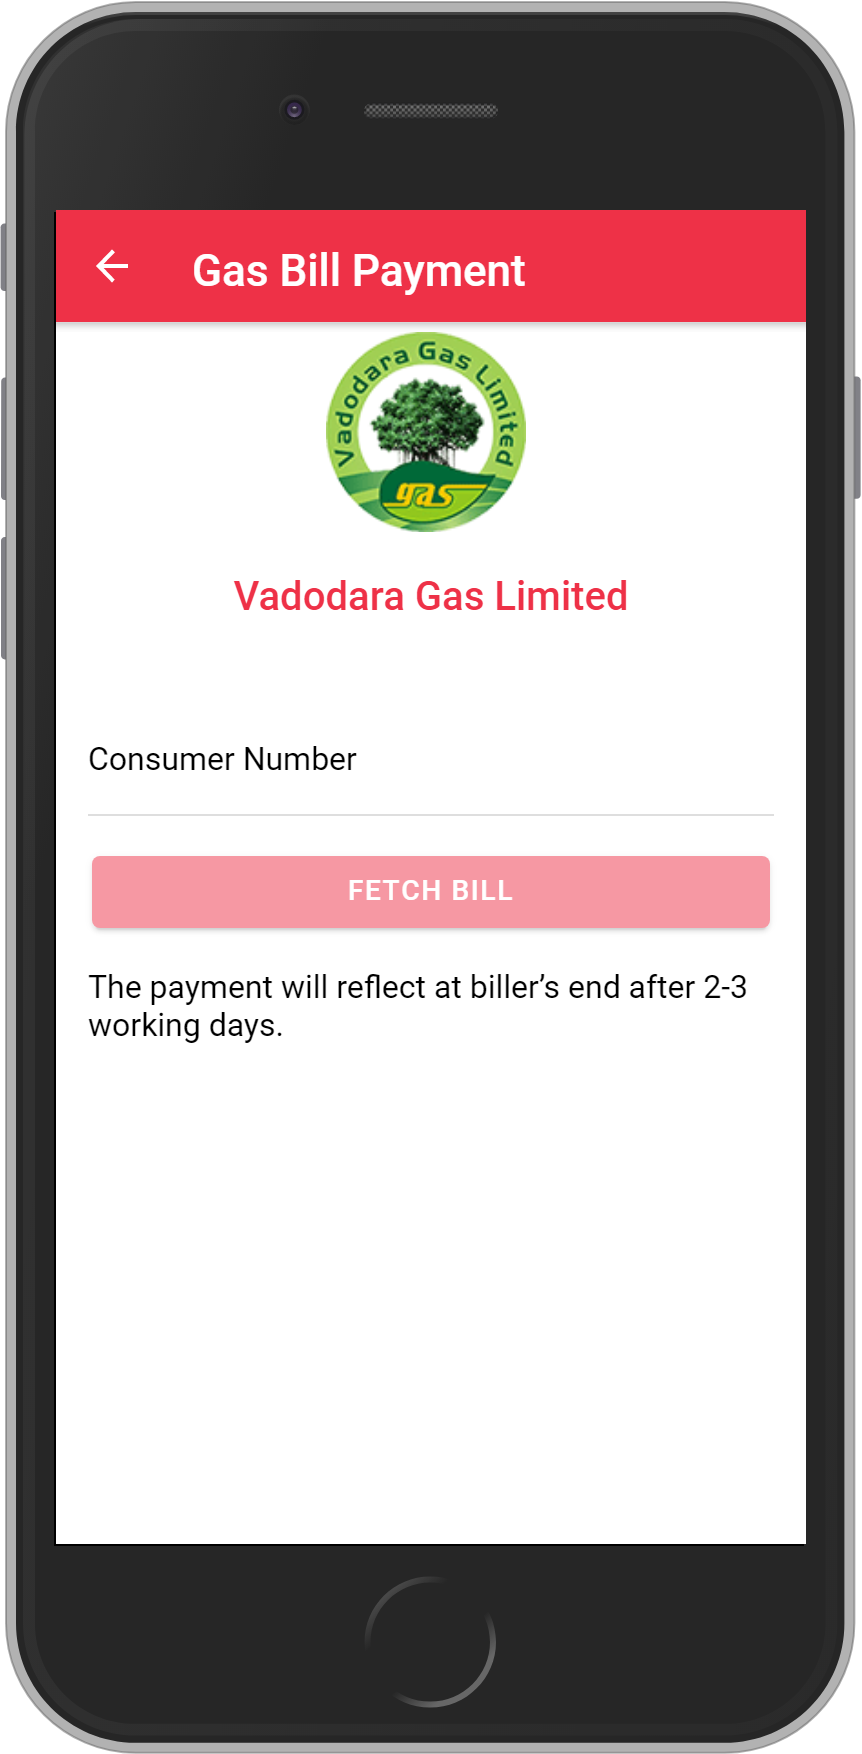 Get UNLIMITED <b>0.1%</b> CASHBACK on Vadodara Gas Limited Bill Payment.